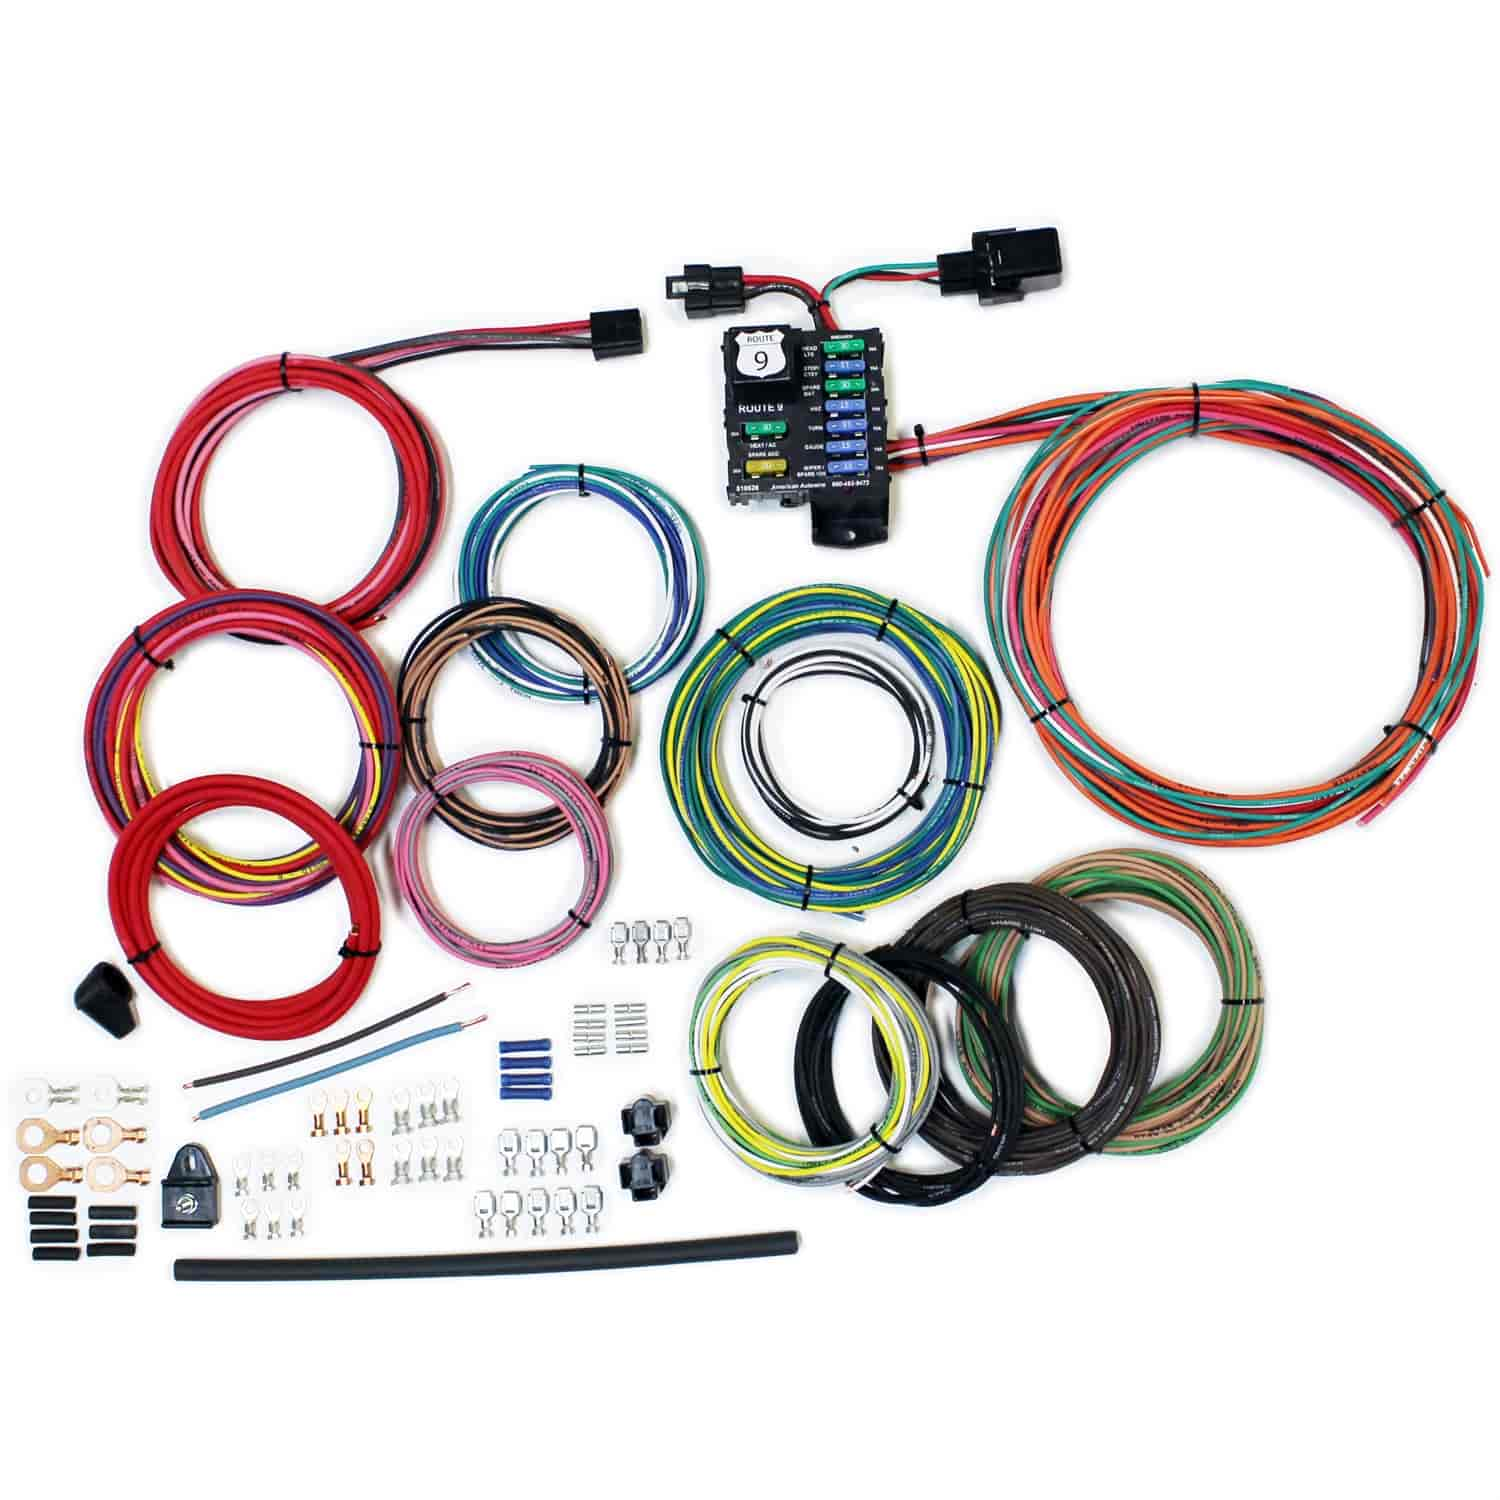 American Autowire 510625: Route 9 Universal Wiring System | JEGS on universal miller by sperian harness, construction harness, universal air filter, universal equipment harness, universal ignition module, universal battery, universal radio harness, universal heater core, universal fuel rail, lightweight safety harness, stihl universal harness, universal steering column, universal fuse box,